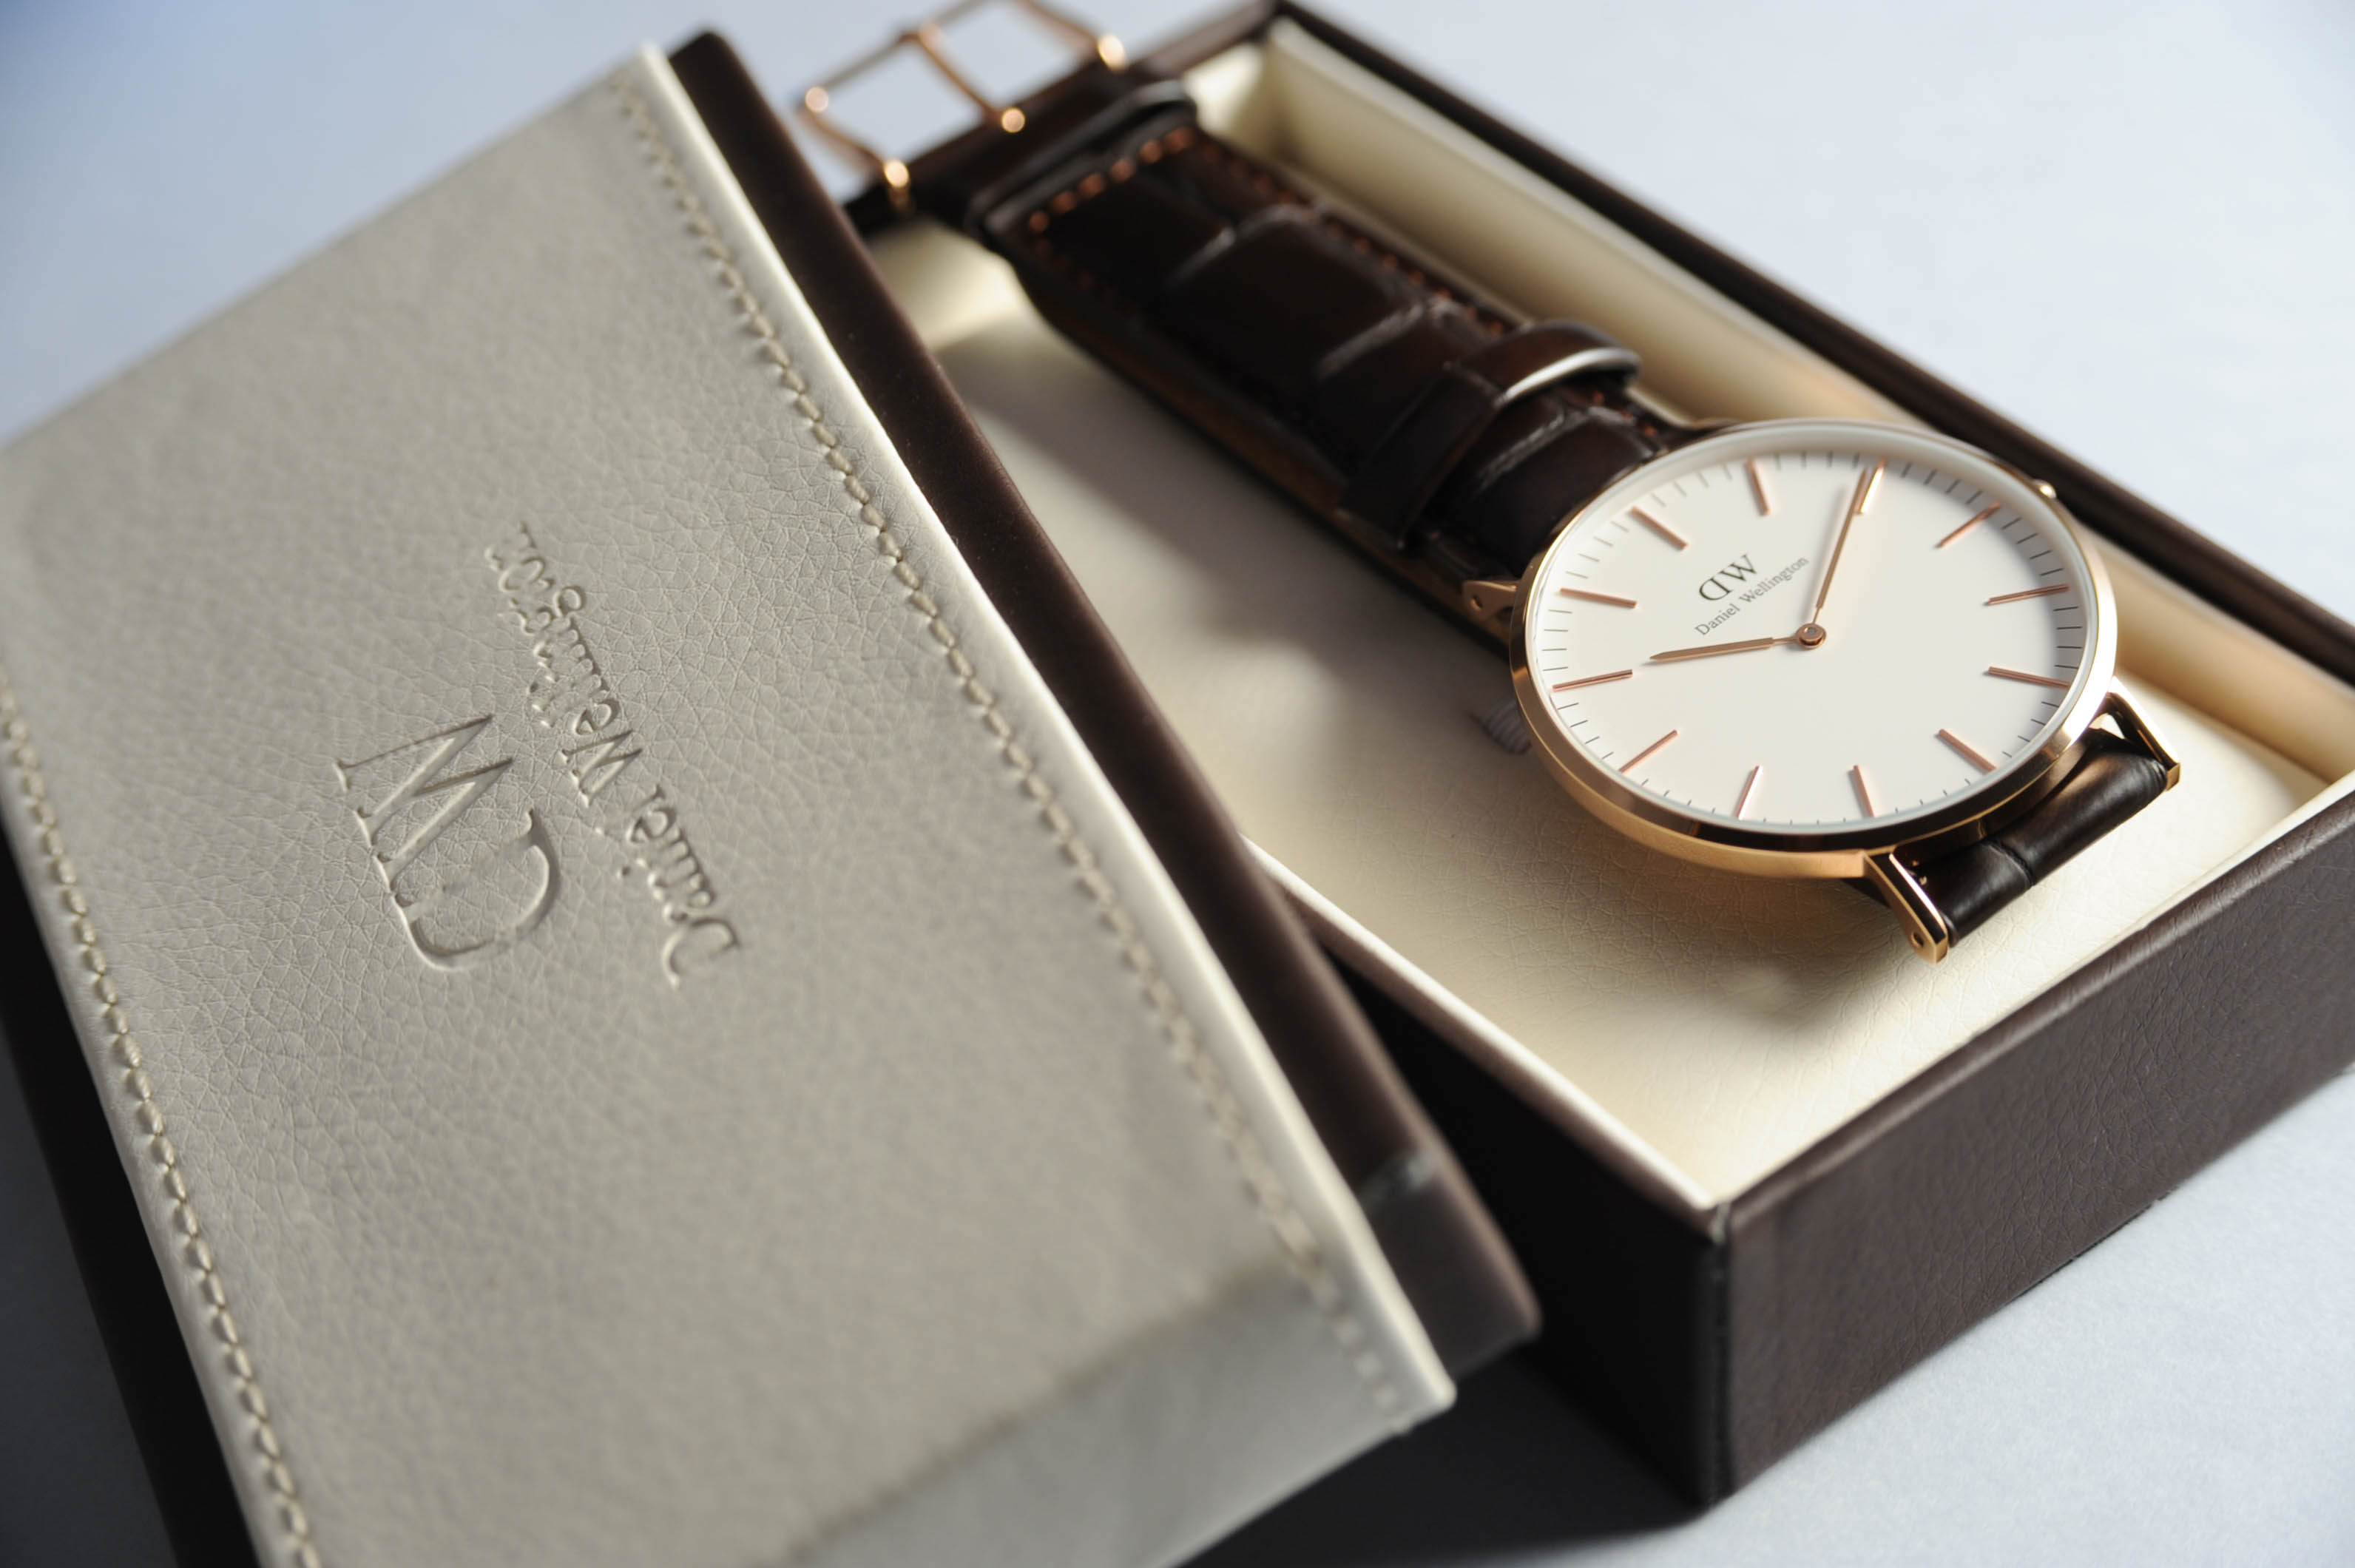 montre daniel wellington homme test et avis verygoodlord. Black Bedroom Furniture Sets. Home Design Ideas